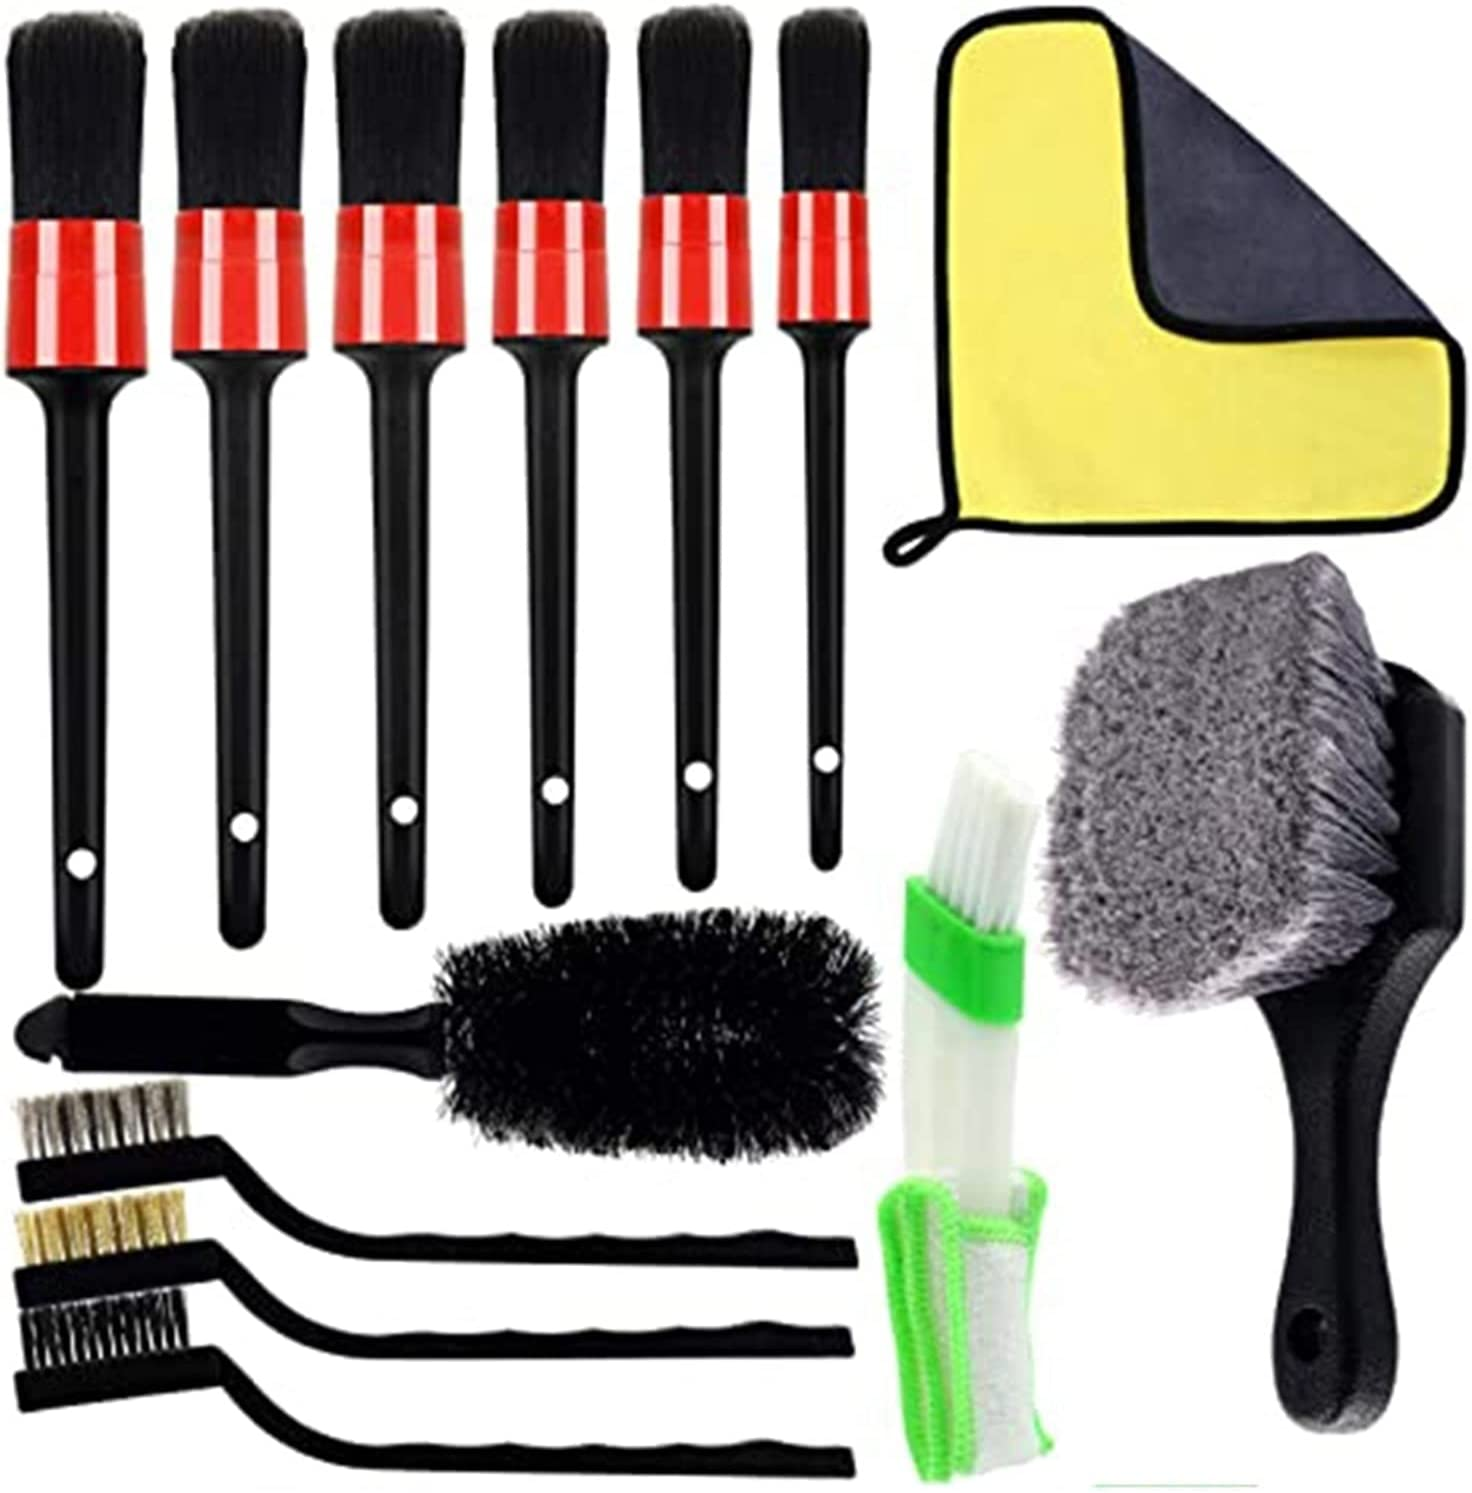 YXIUER 13pcs Car Great interest Cleaner Brush Set D Microfiber Cloth with New color Waxed